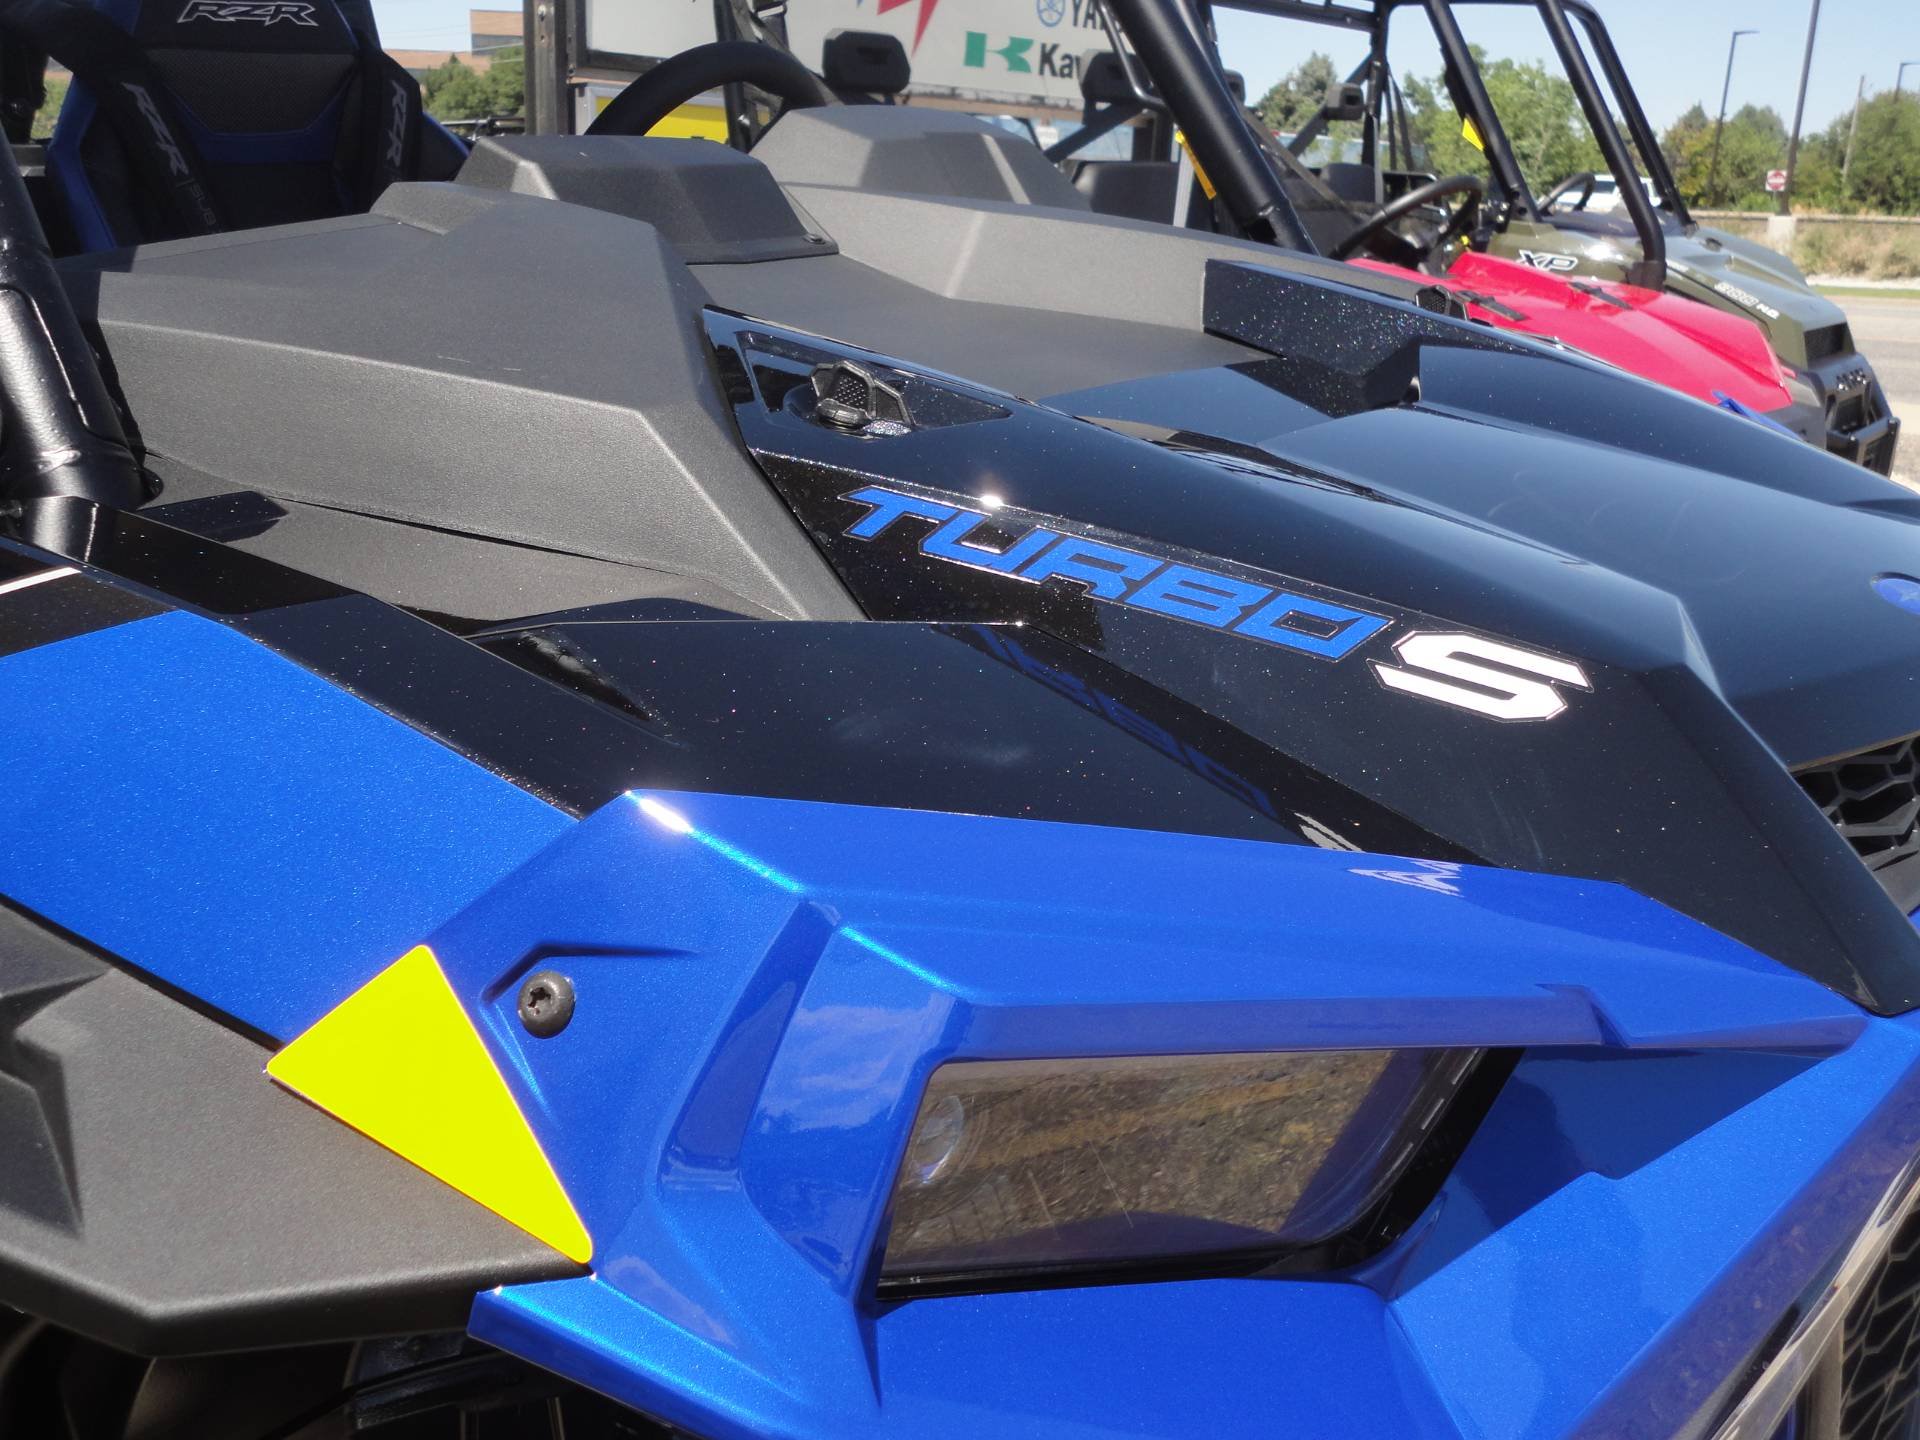 2019 Polaris RZR XP Turbo S in Denver, Colorado - Photo 6